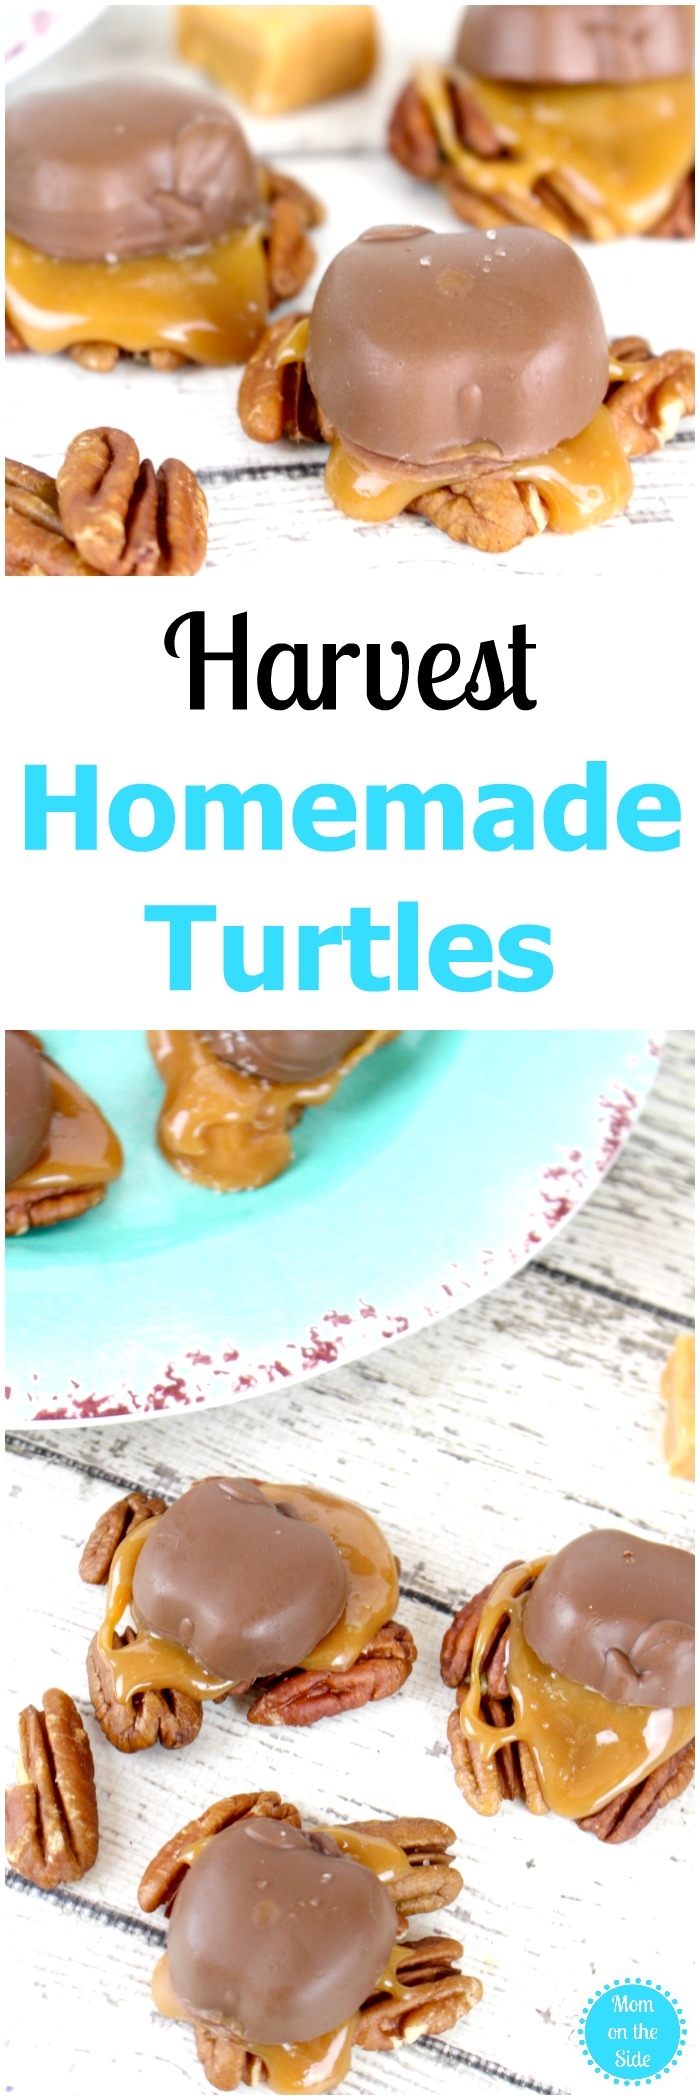 A delicious fall dessert, these Harvest Homemade Turtles are easy and full of fall flavor!